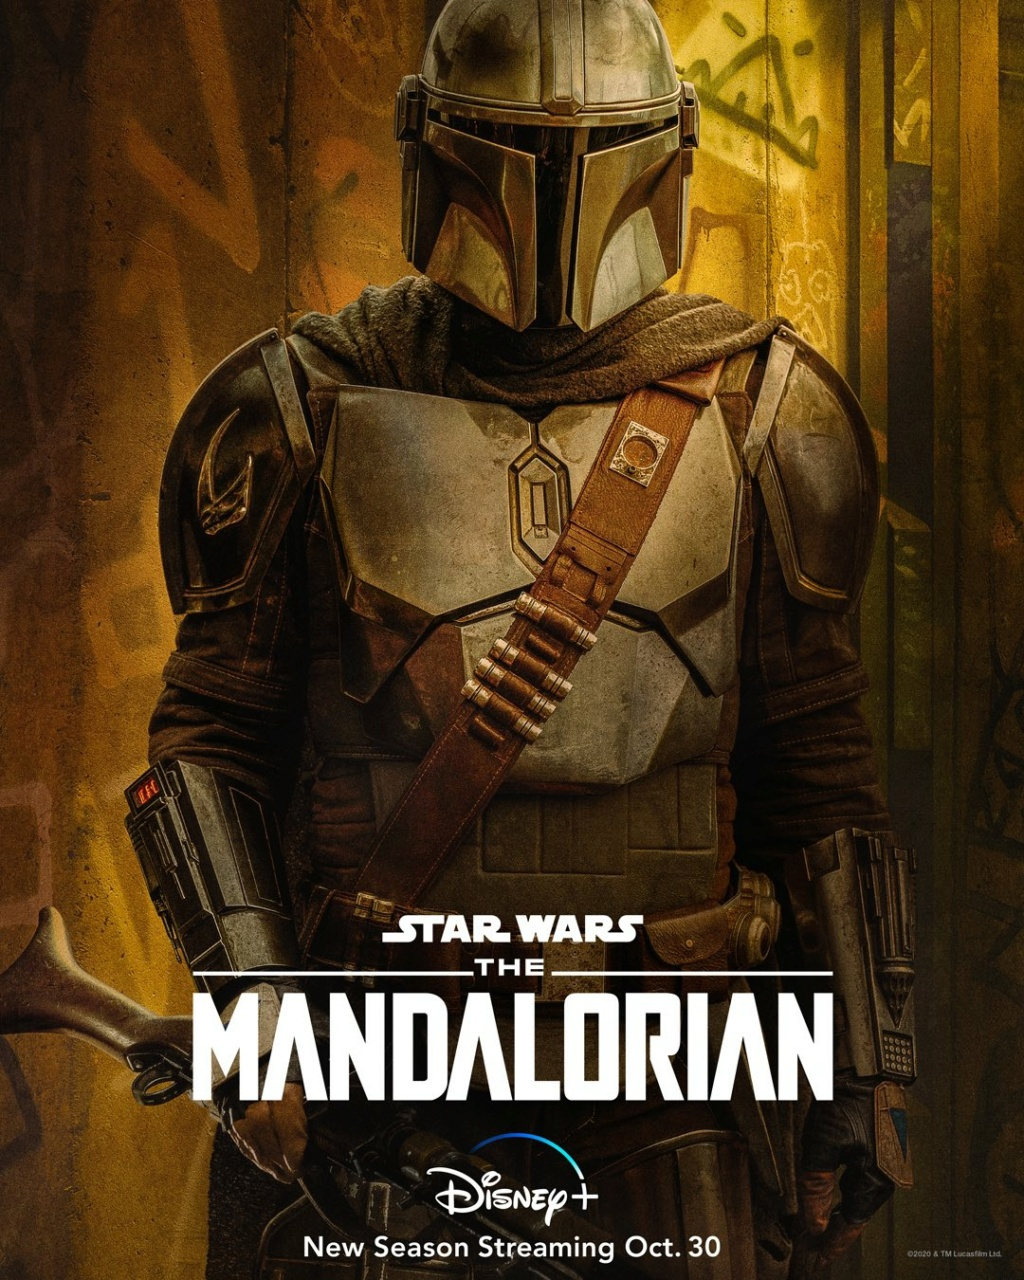 Les NEWS de la saison 2 de Star Wars The Mandalorian  - Page 2 Img_2069